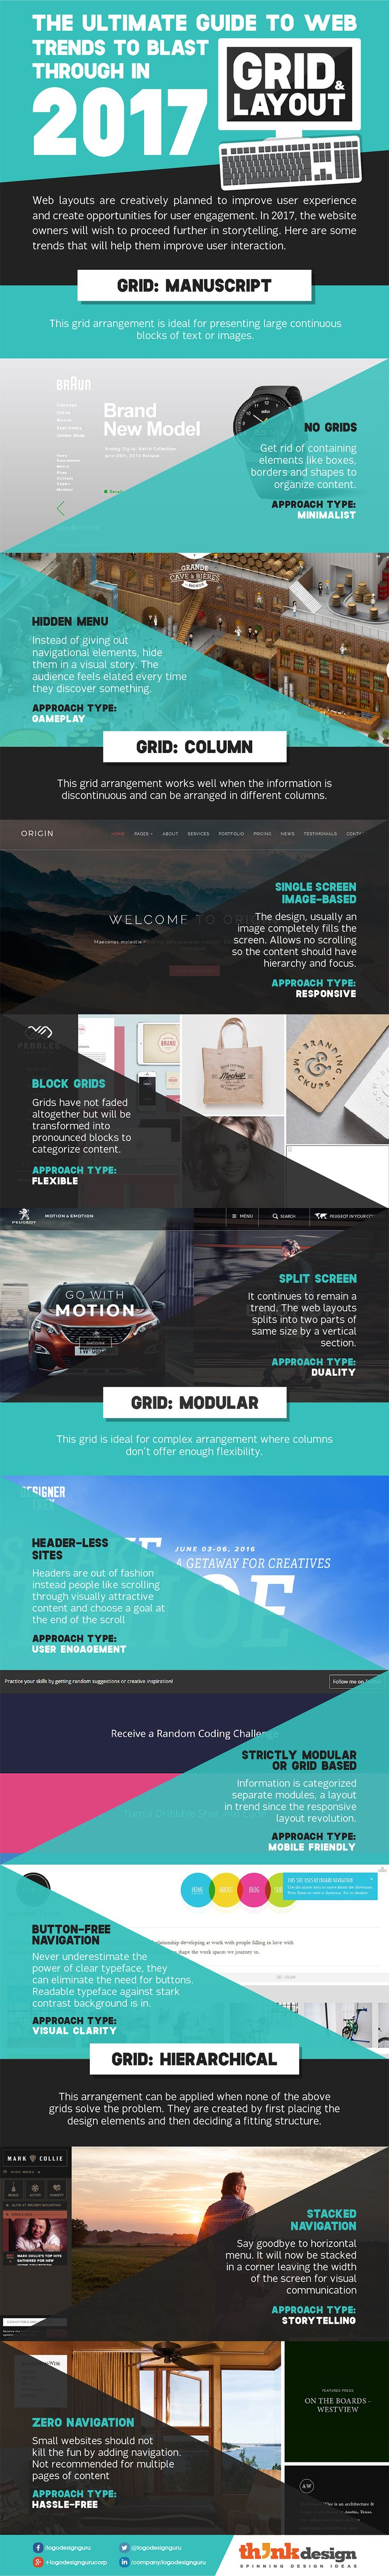 10 Modern Website Layouts to Try Out in 2017 [Infographic]